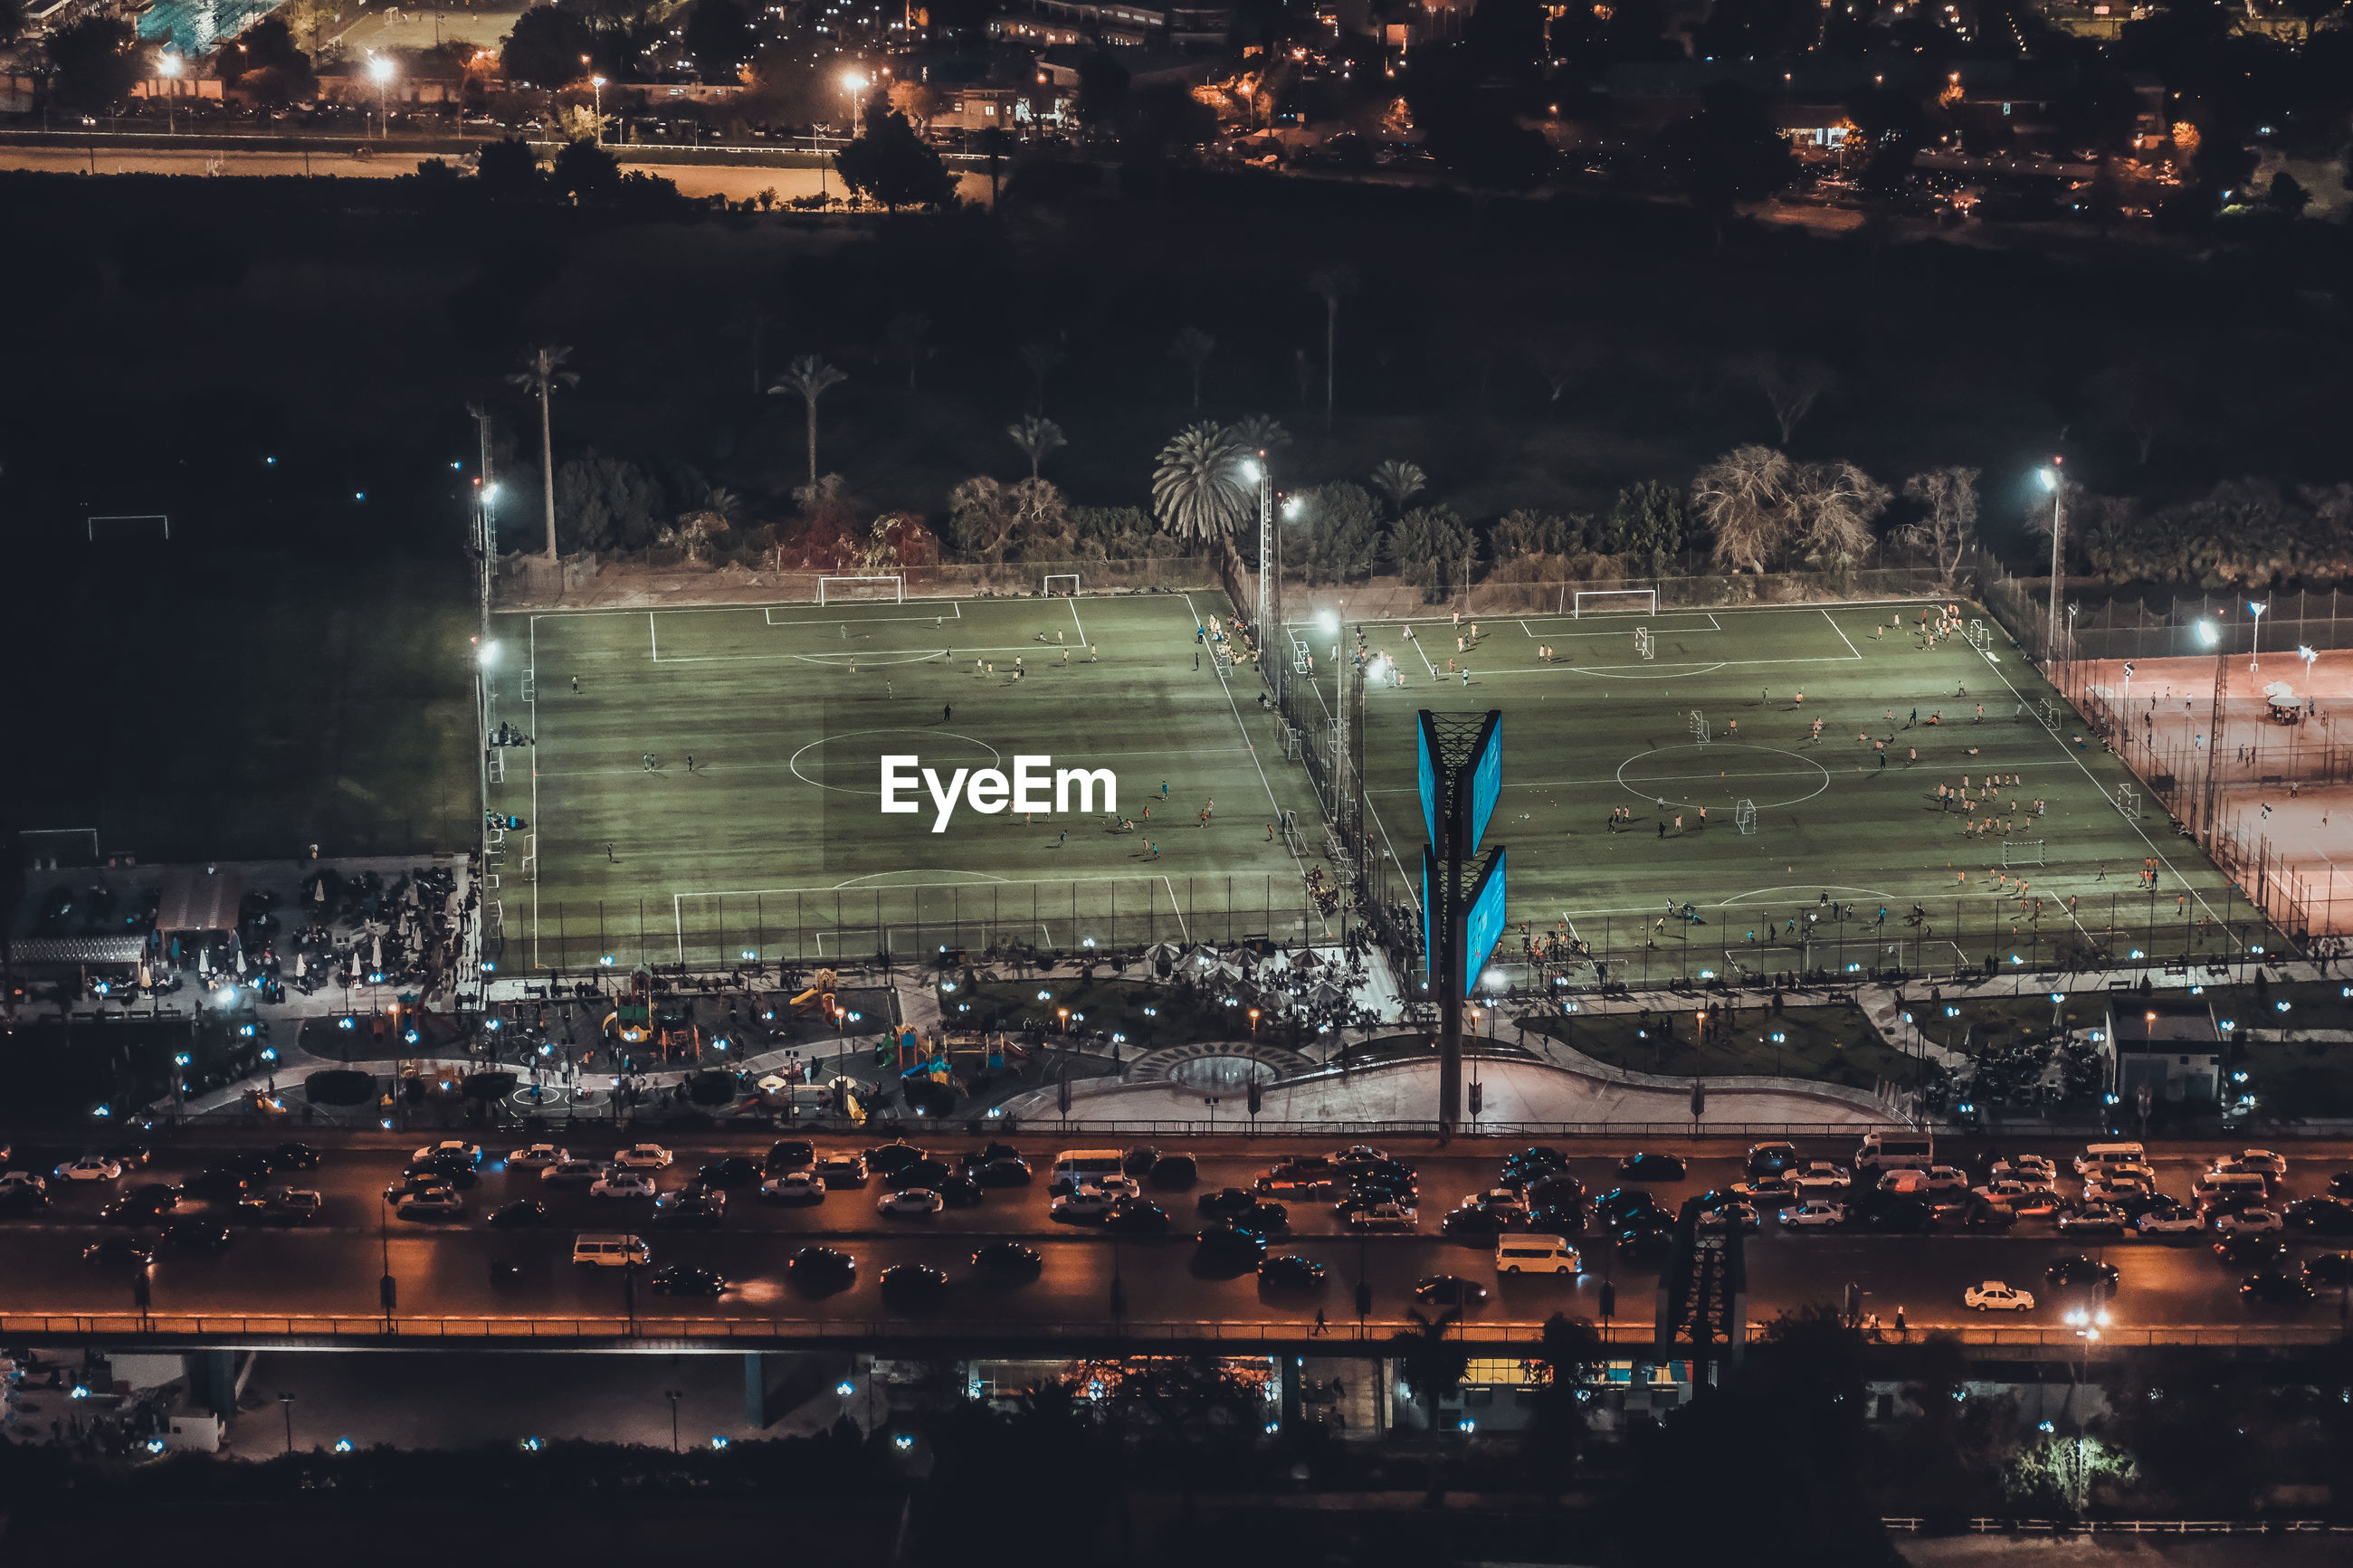 Aerial view of soccer field at night